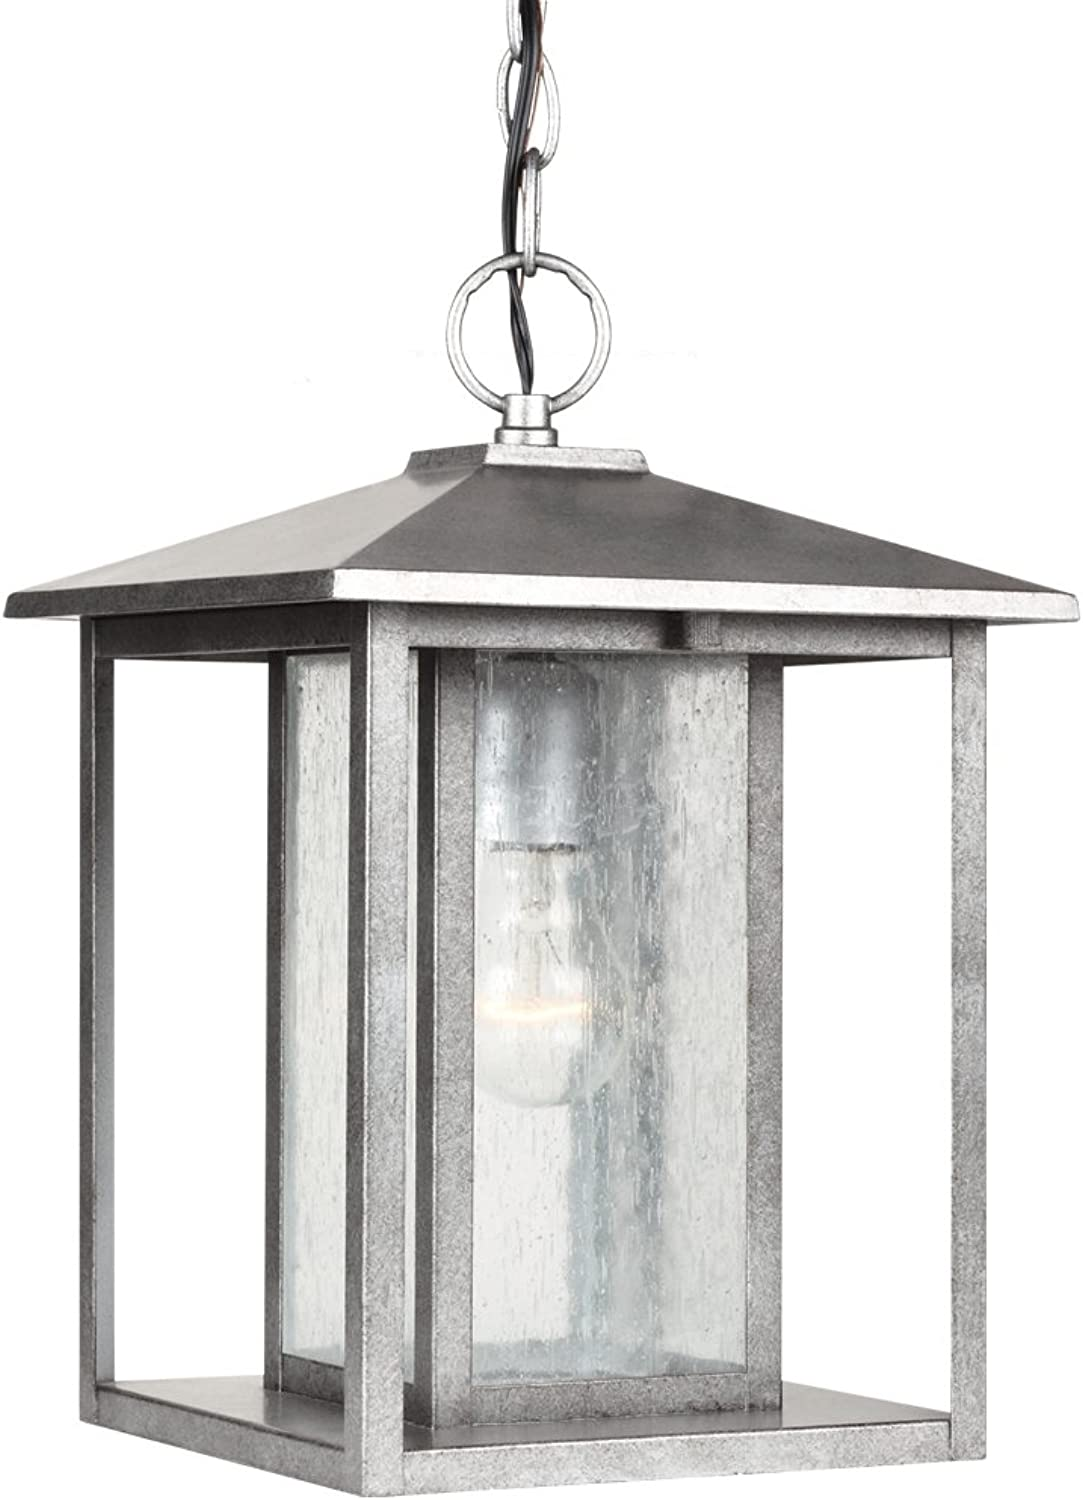 Sea Gull Lighting 62027-57 Outdoor Pendant with Clear Seeded?Glass Shades, Weathered Pewter Finish